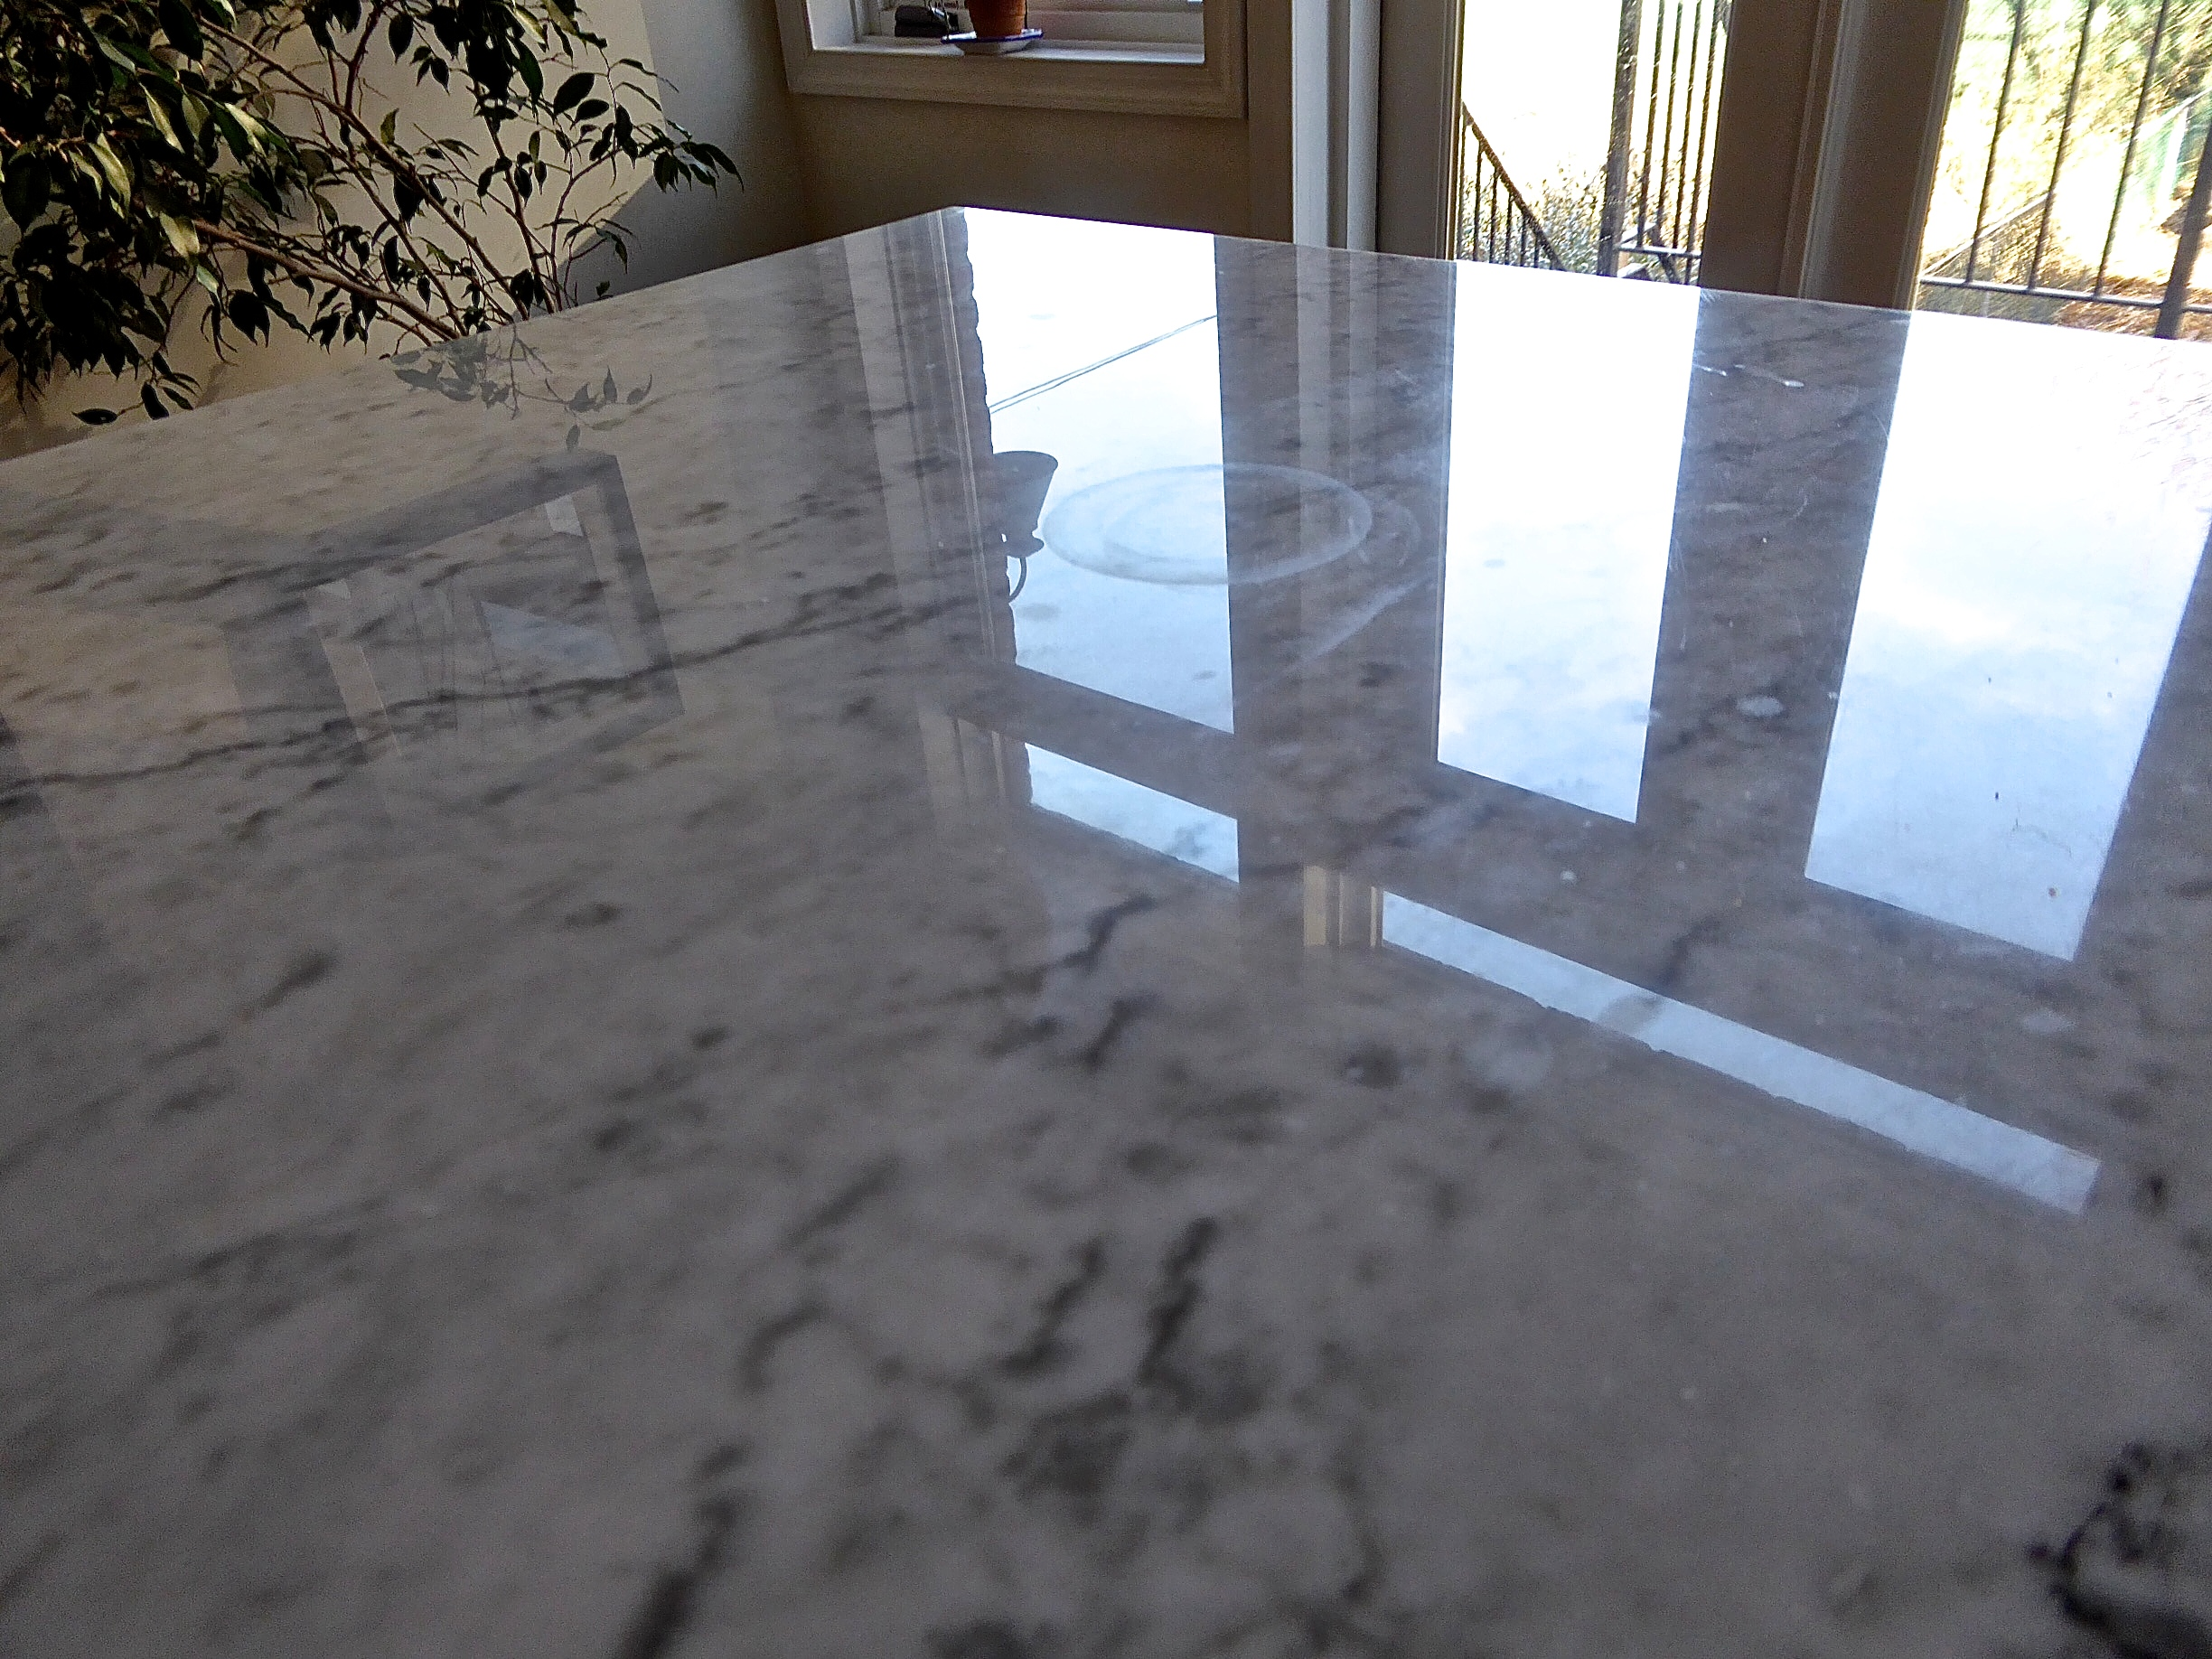 How To Get Stains Off Marble Countertop How To Remove Stains And Water Marks From Marble